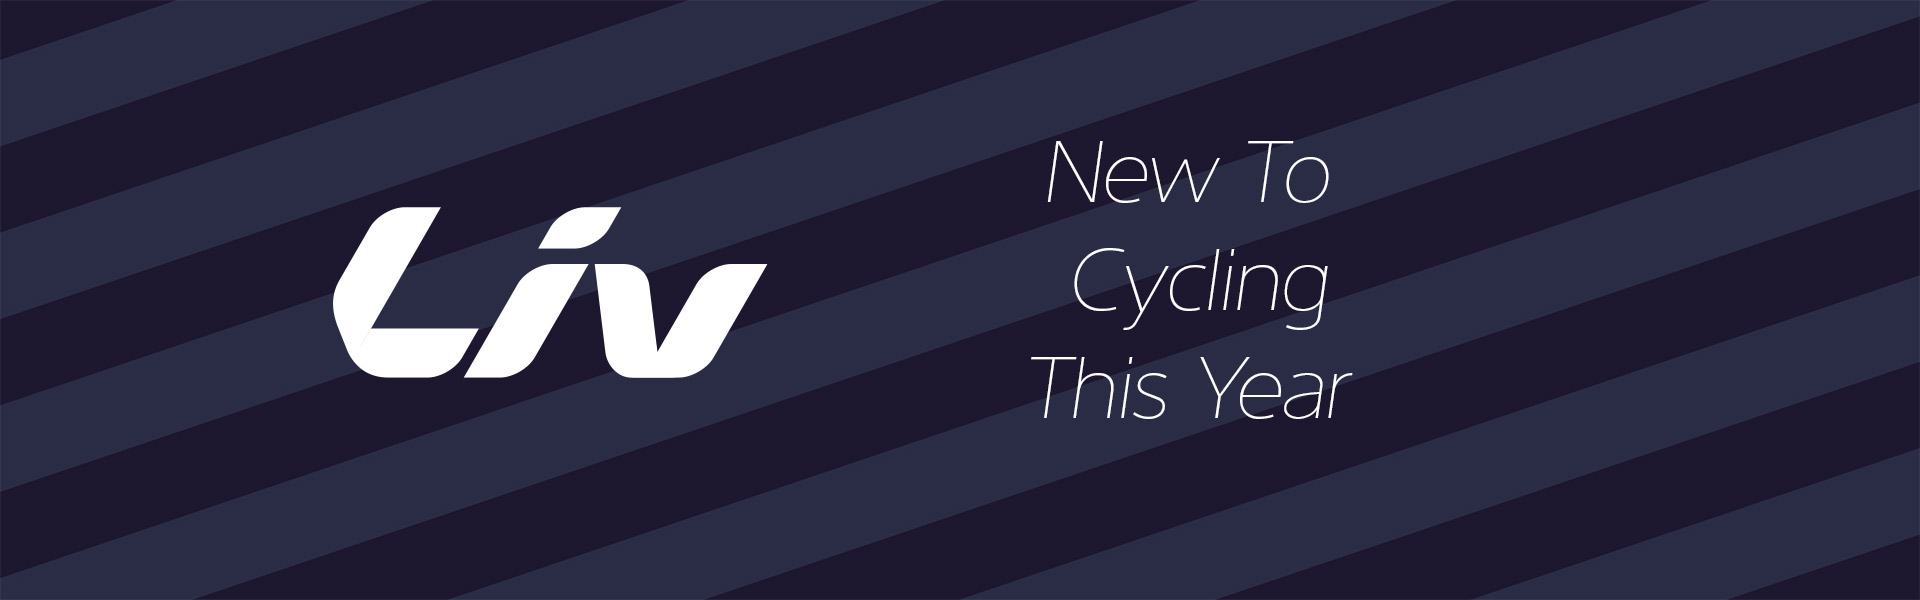 New To Cycling This Christmas